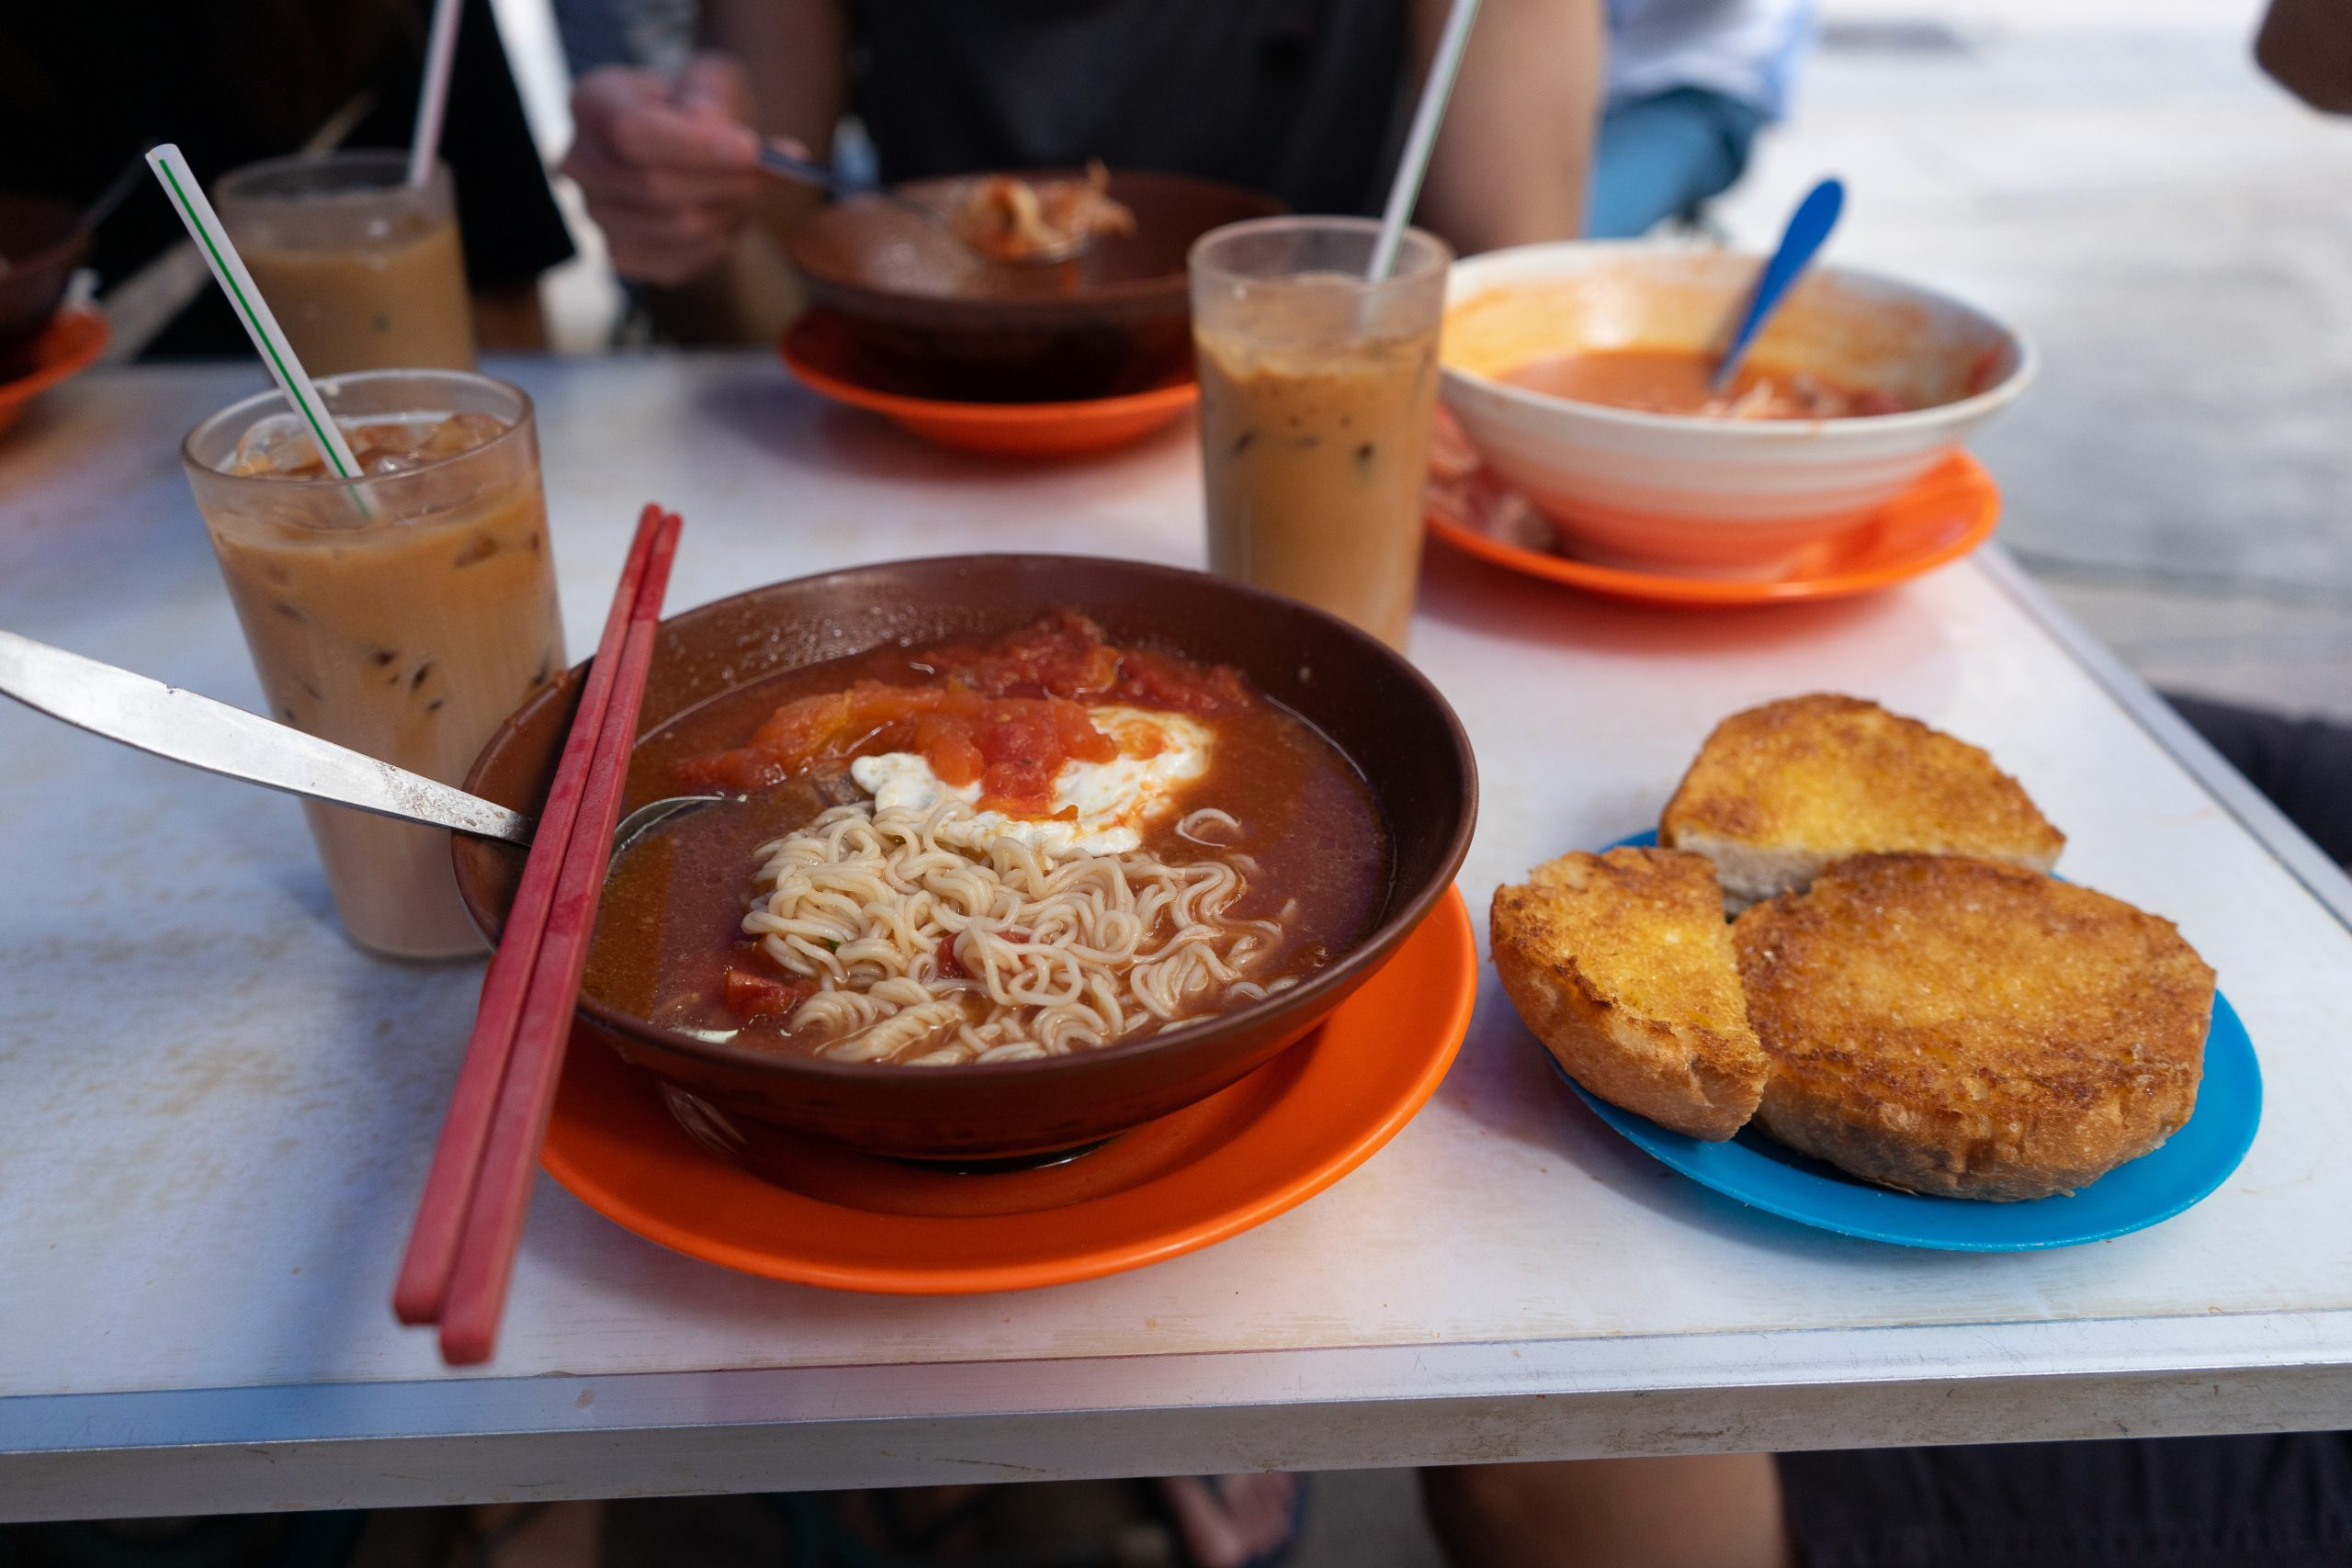 Full meal with tomato broth soup and condensed milk buns at Sin Heung Yuen, one of the best local foods in Sheung Wan Hong Kong